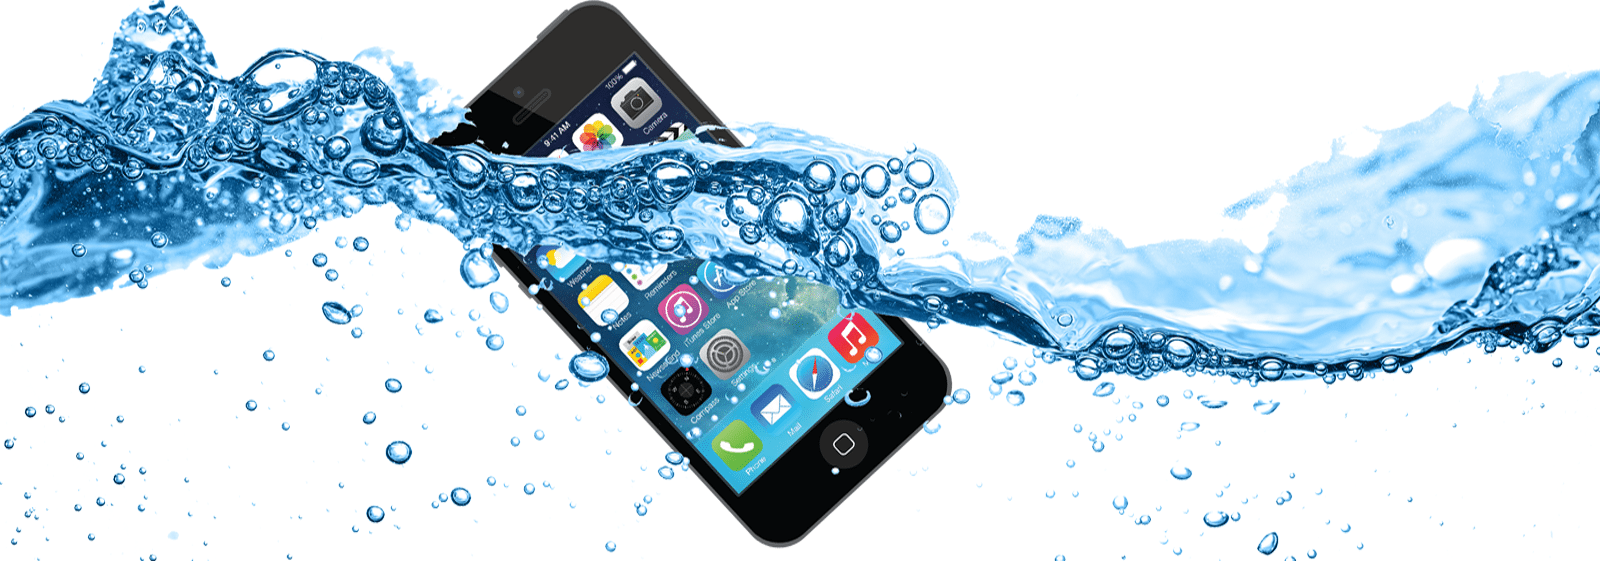 Waterschade reparatie aan smartphone of iPad